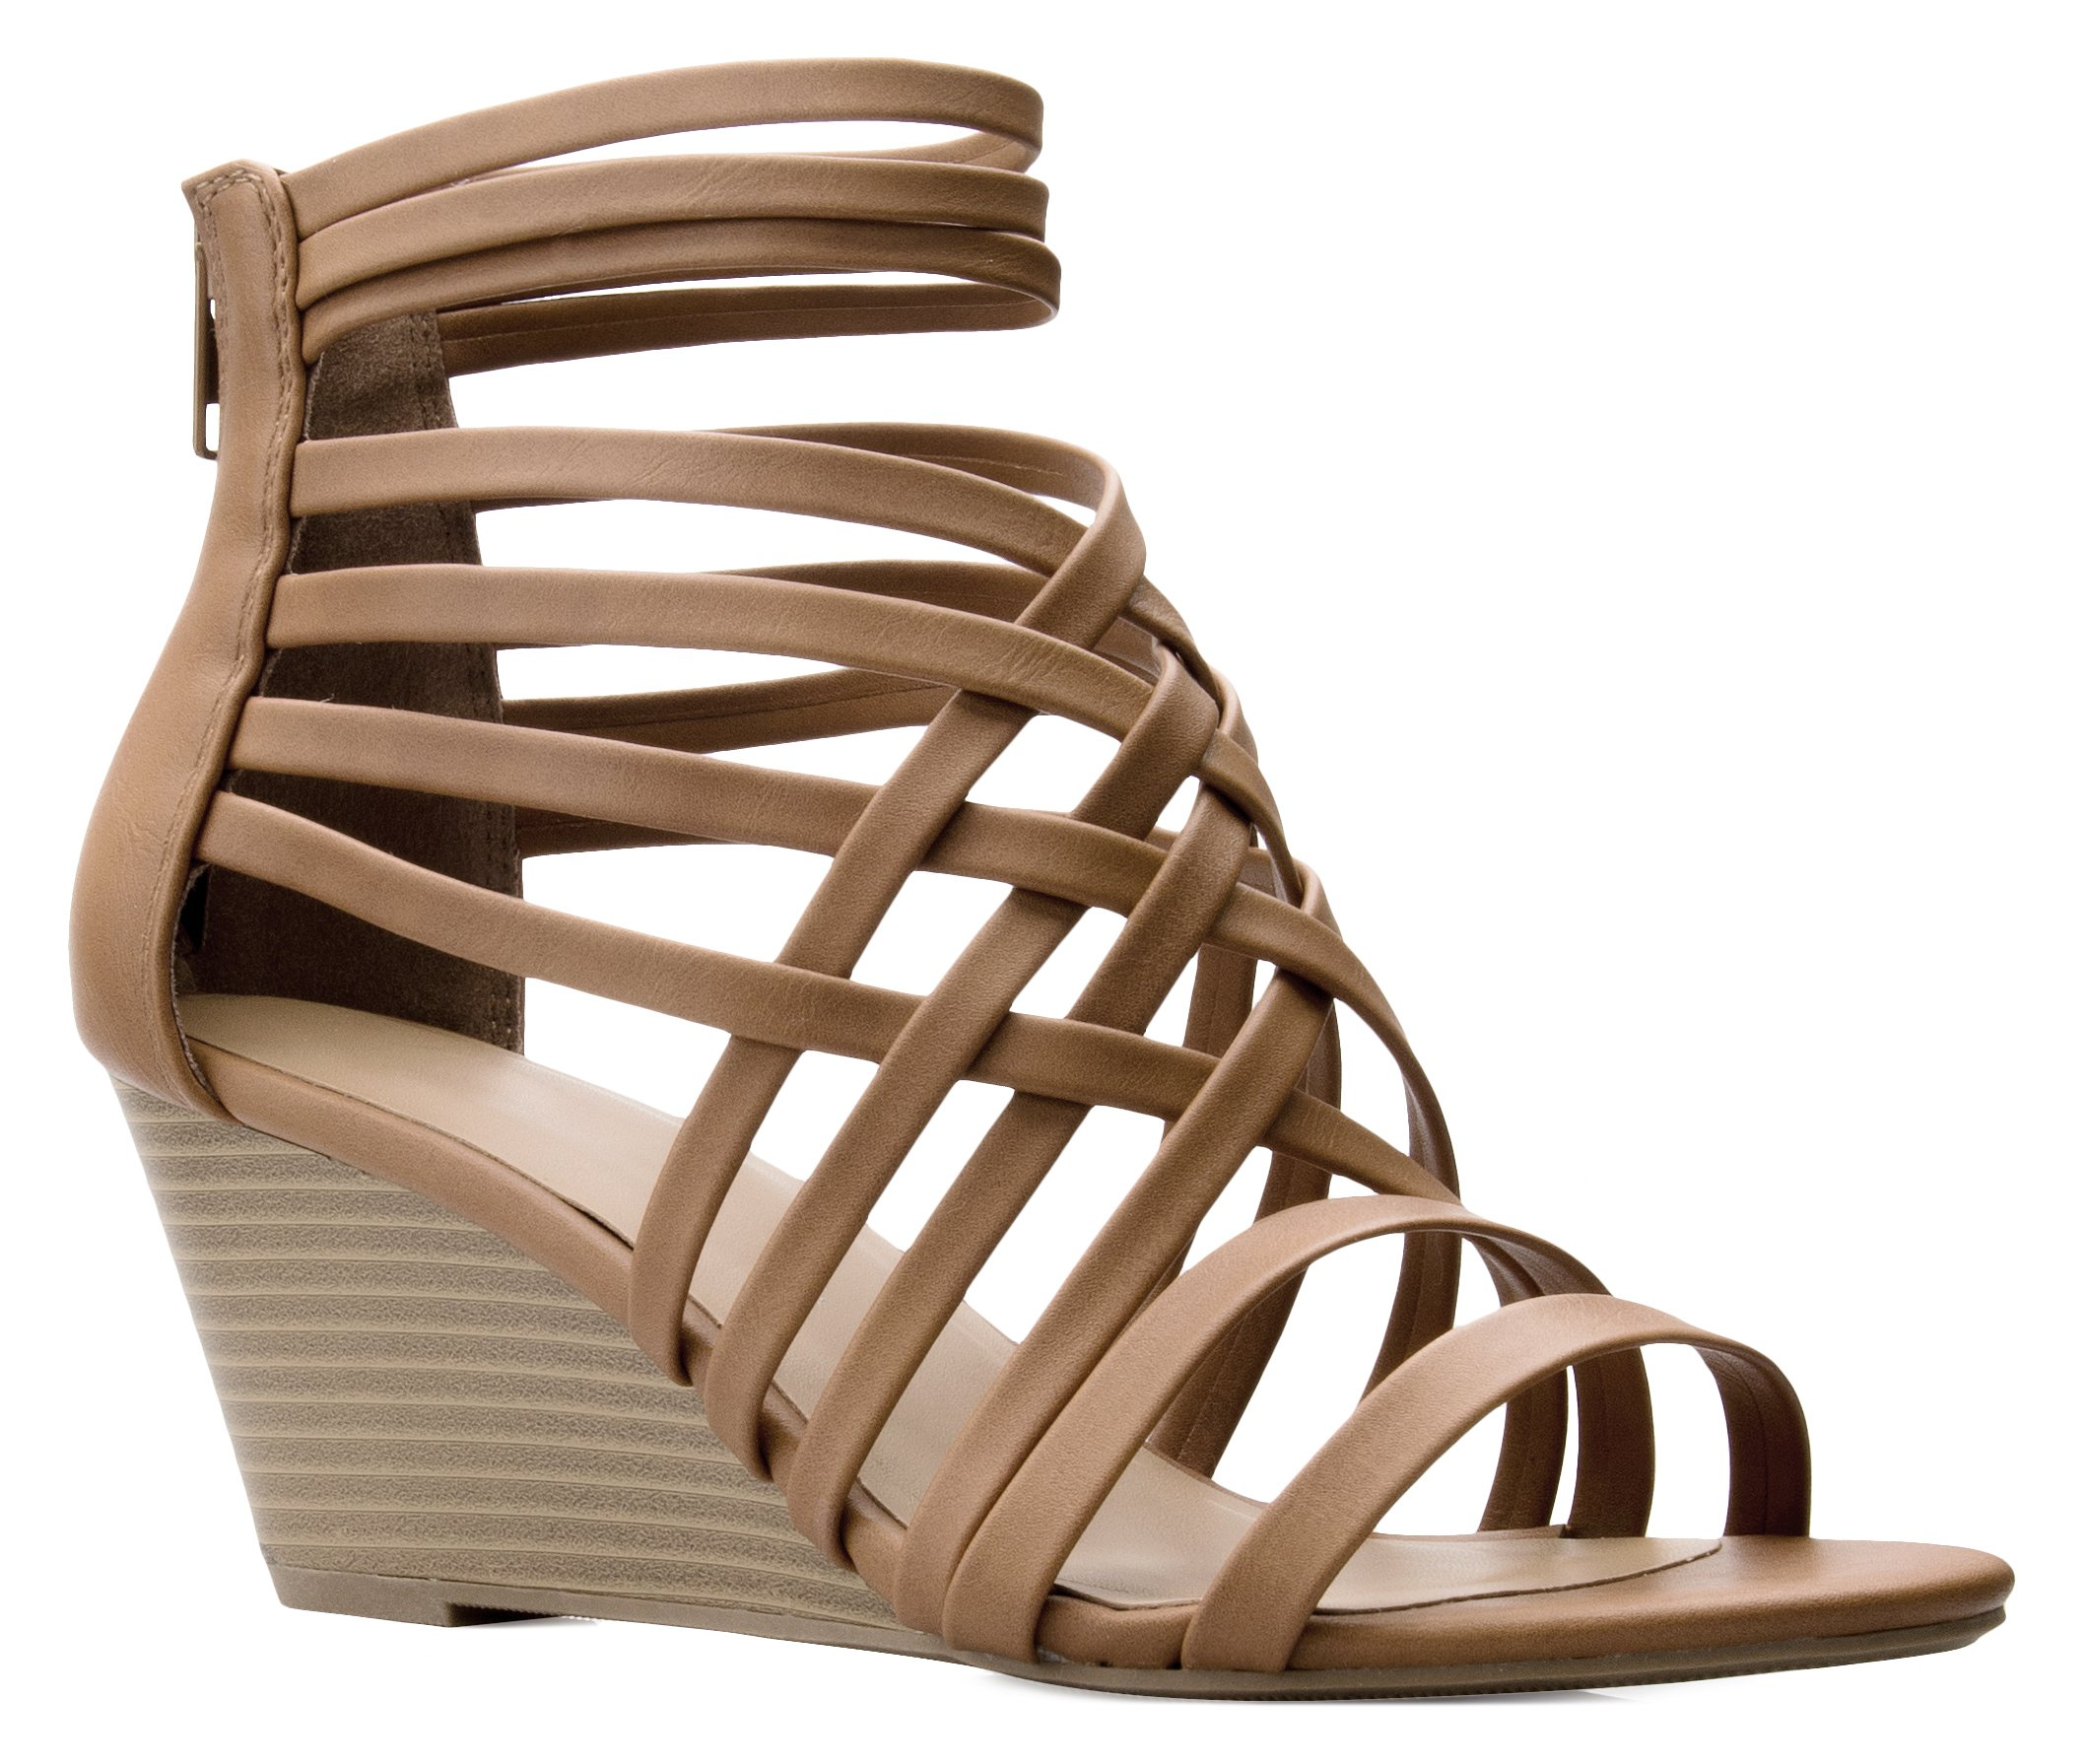 OLIVIA K Women's Strappy Woven Wedge Sandals - Sexy Open Toe Heel - Comfort, Fasionable, Casual Style by OLIVIA K